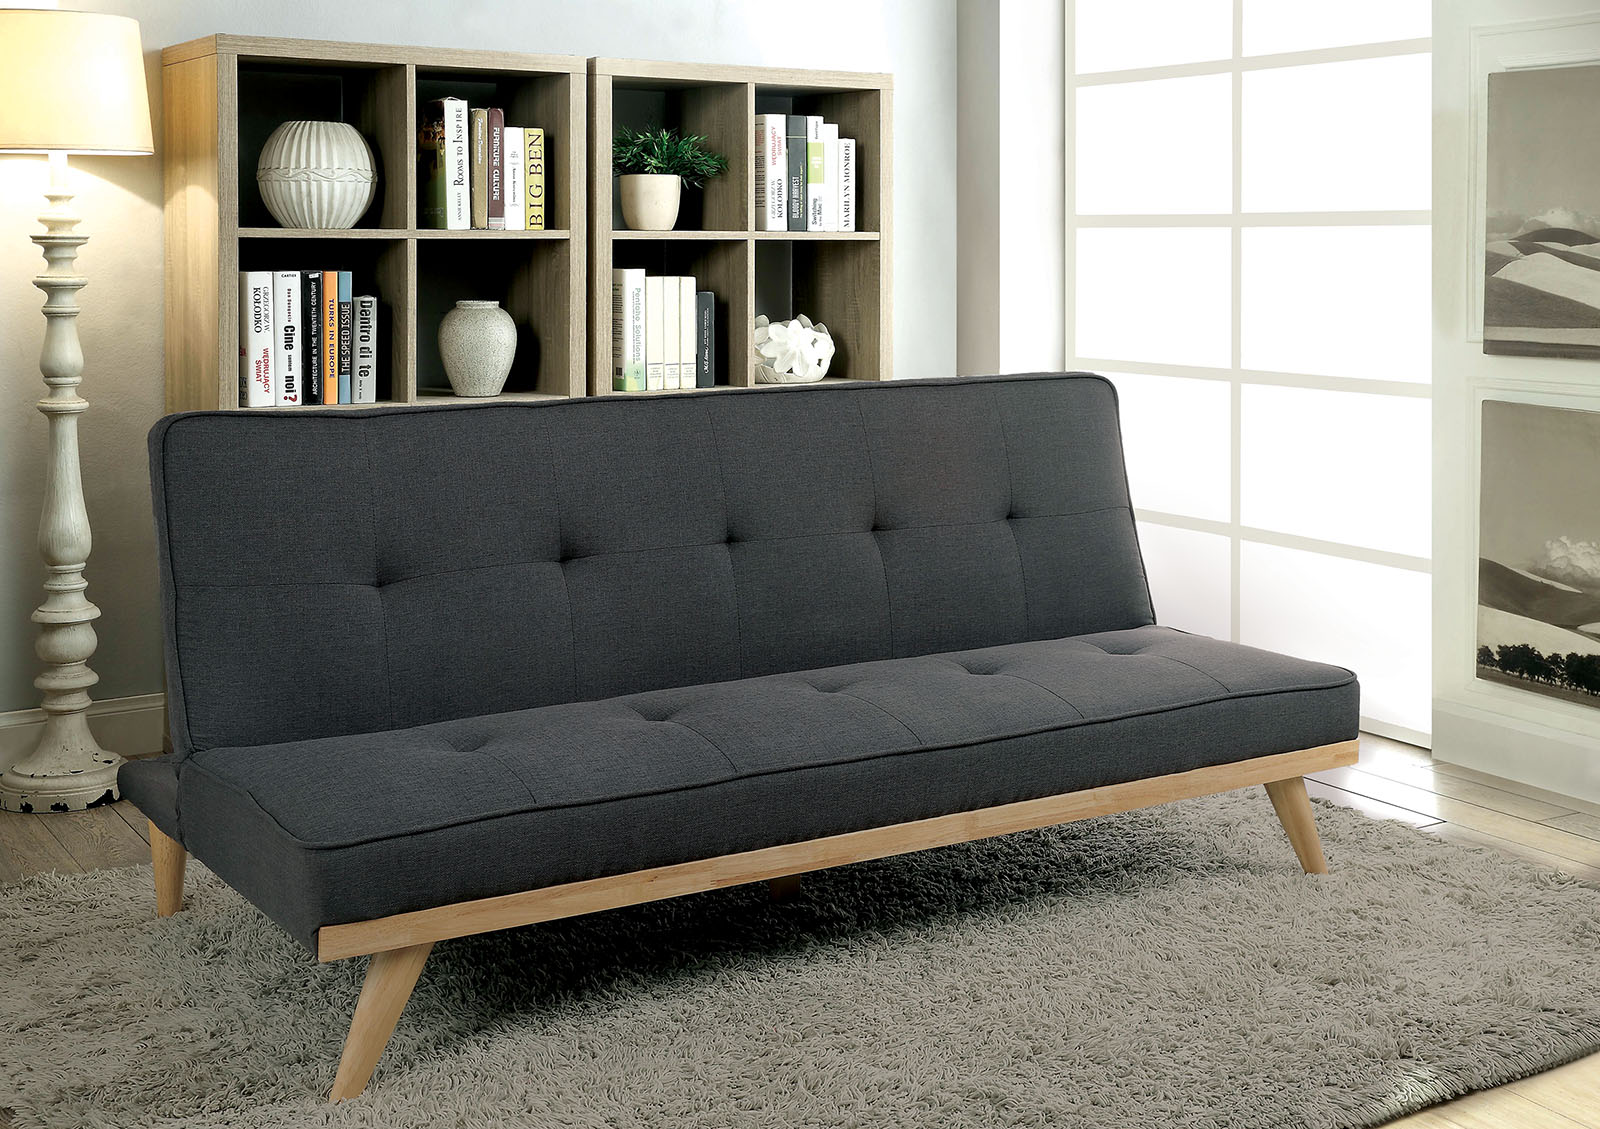 furniture of america 2441gy gray mid century modern futon sofa bed rh wyckes com